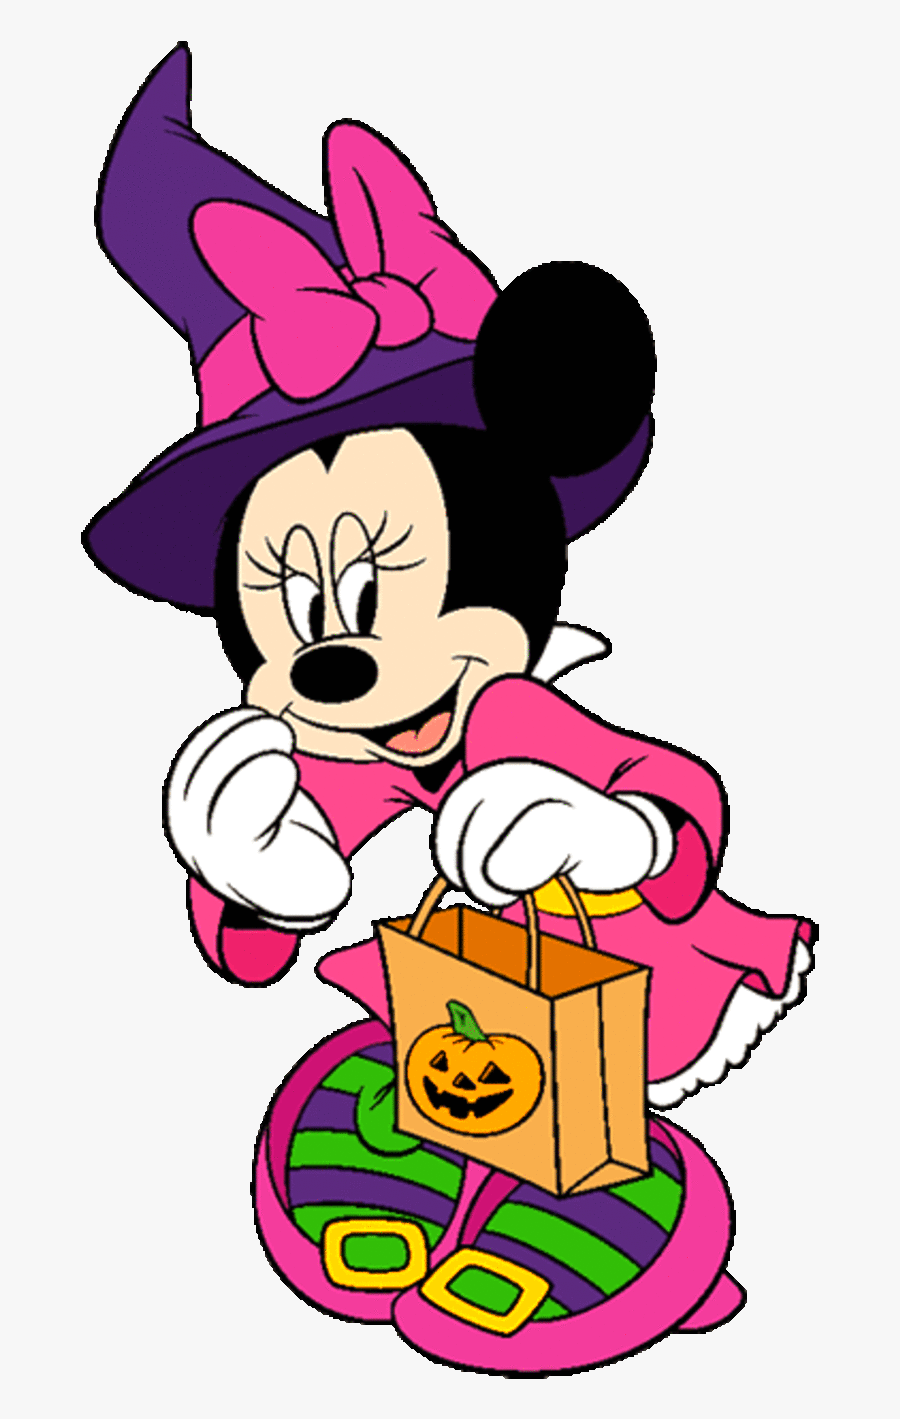 Halloween Minnie Mouse Clip Art - Halloween Minnie Mouse And Mickey, Transparent Clipart